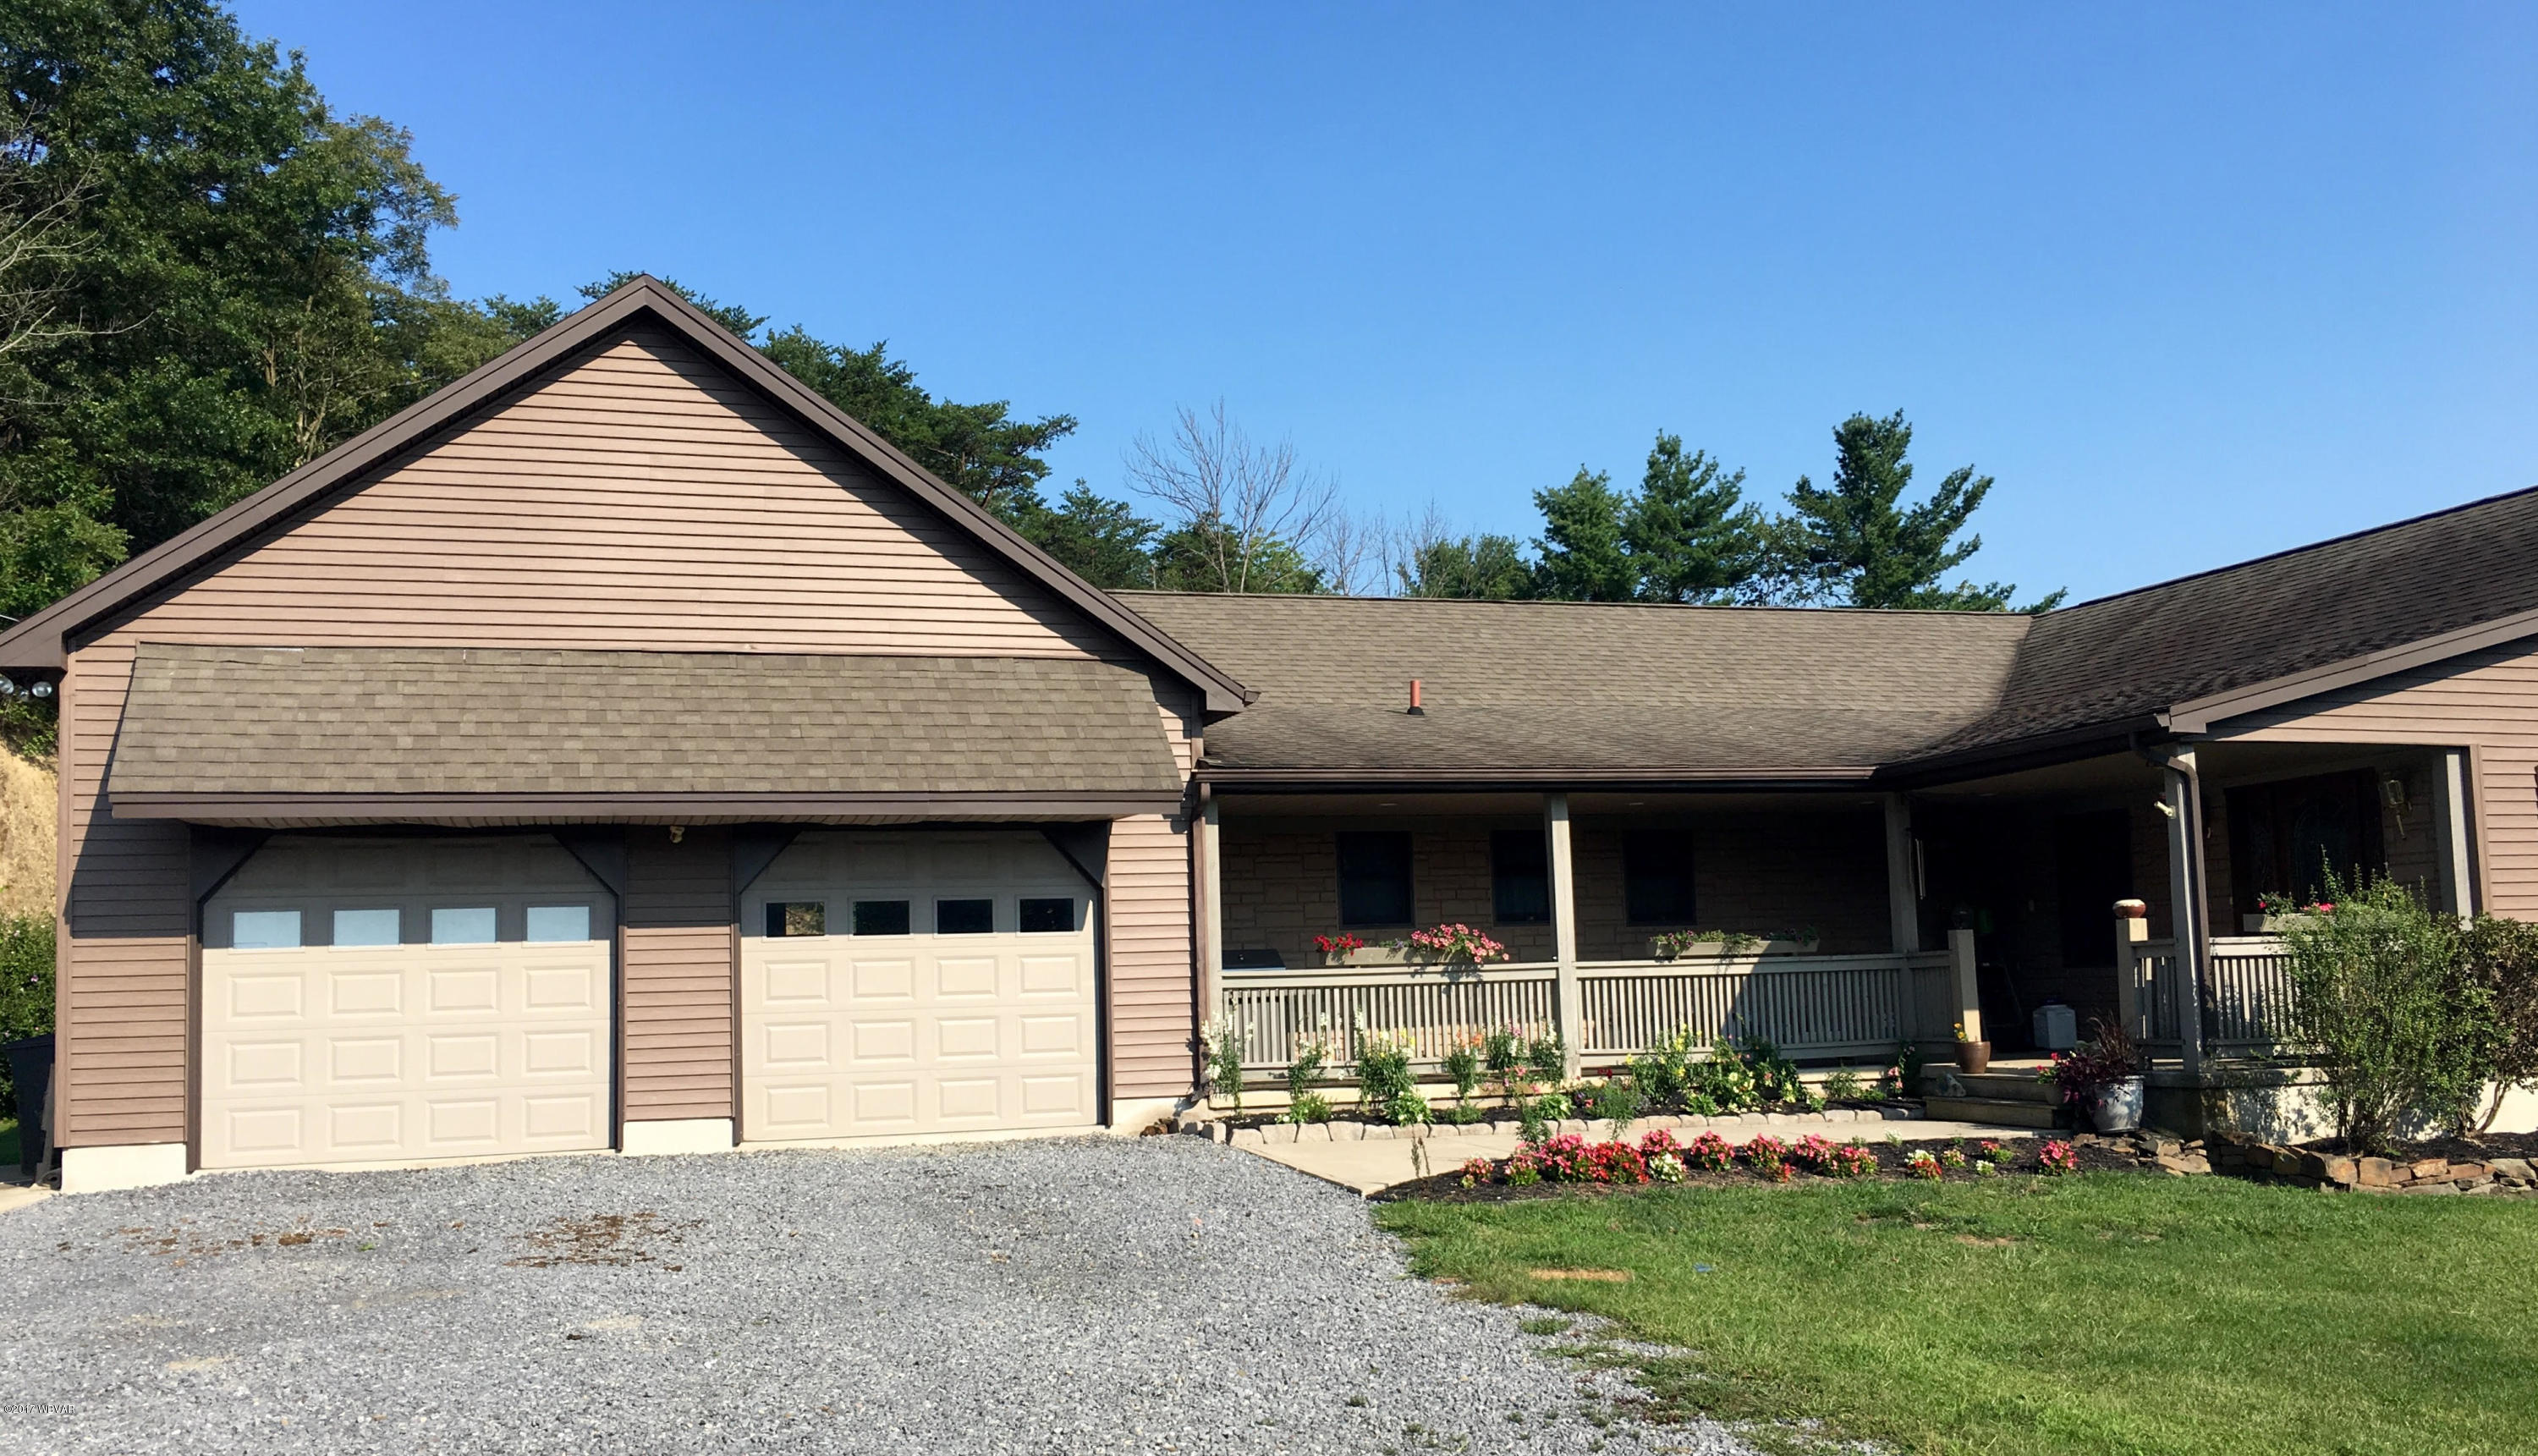 70 BAYBERRY DRIVE,Jersey Shore,PA 17740,3 Bedrooms Bedrooms,3 BathroomsBathrooms,Residential,BAYBERRY,WB-83780